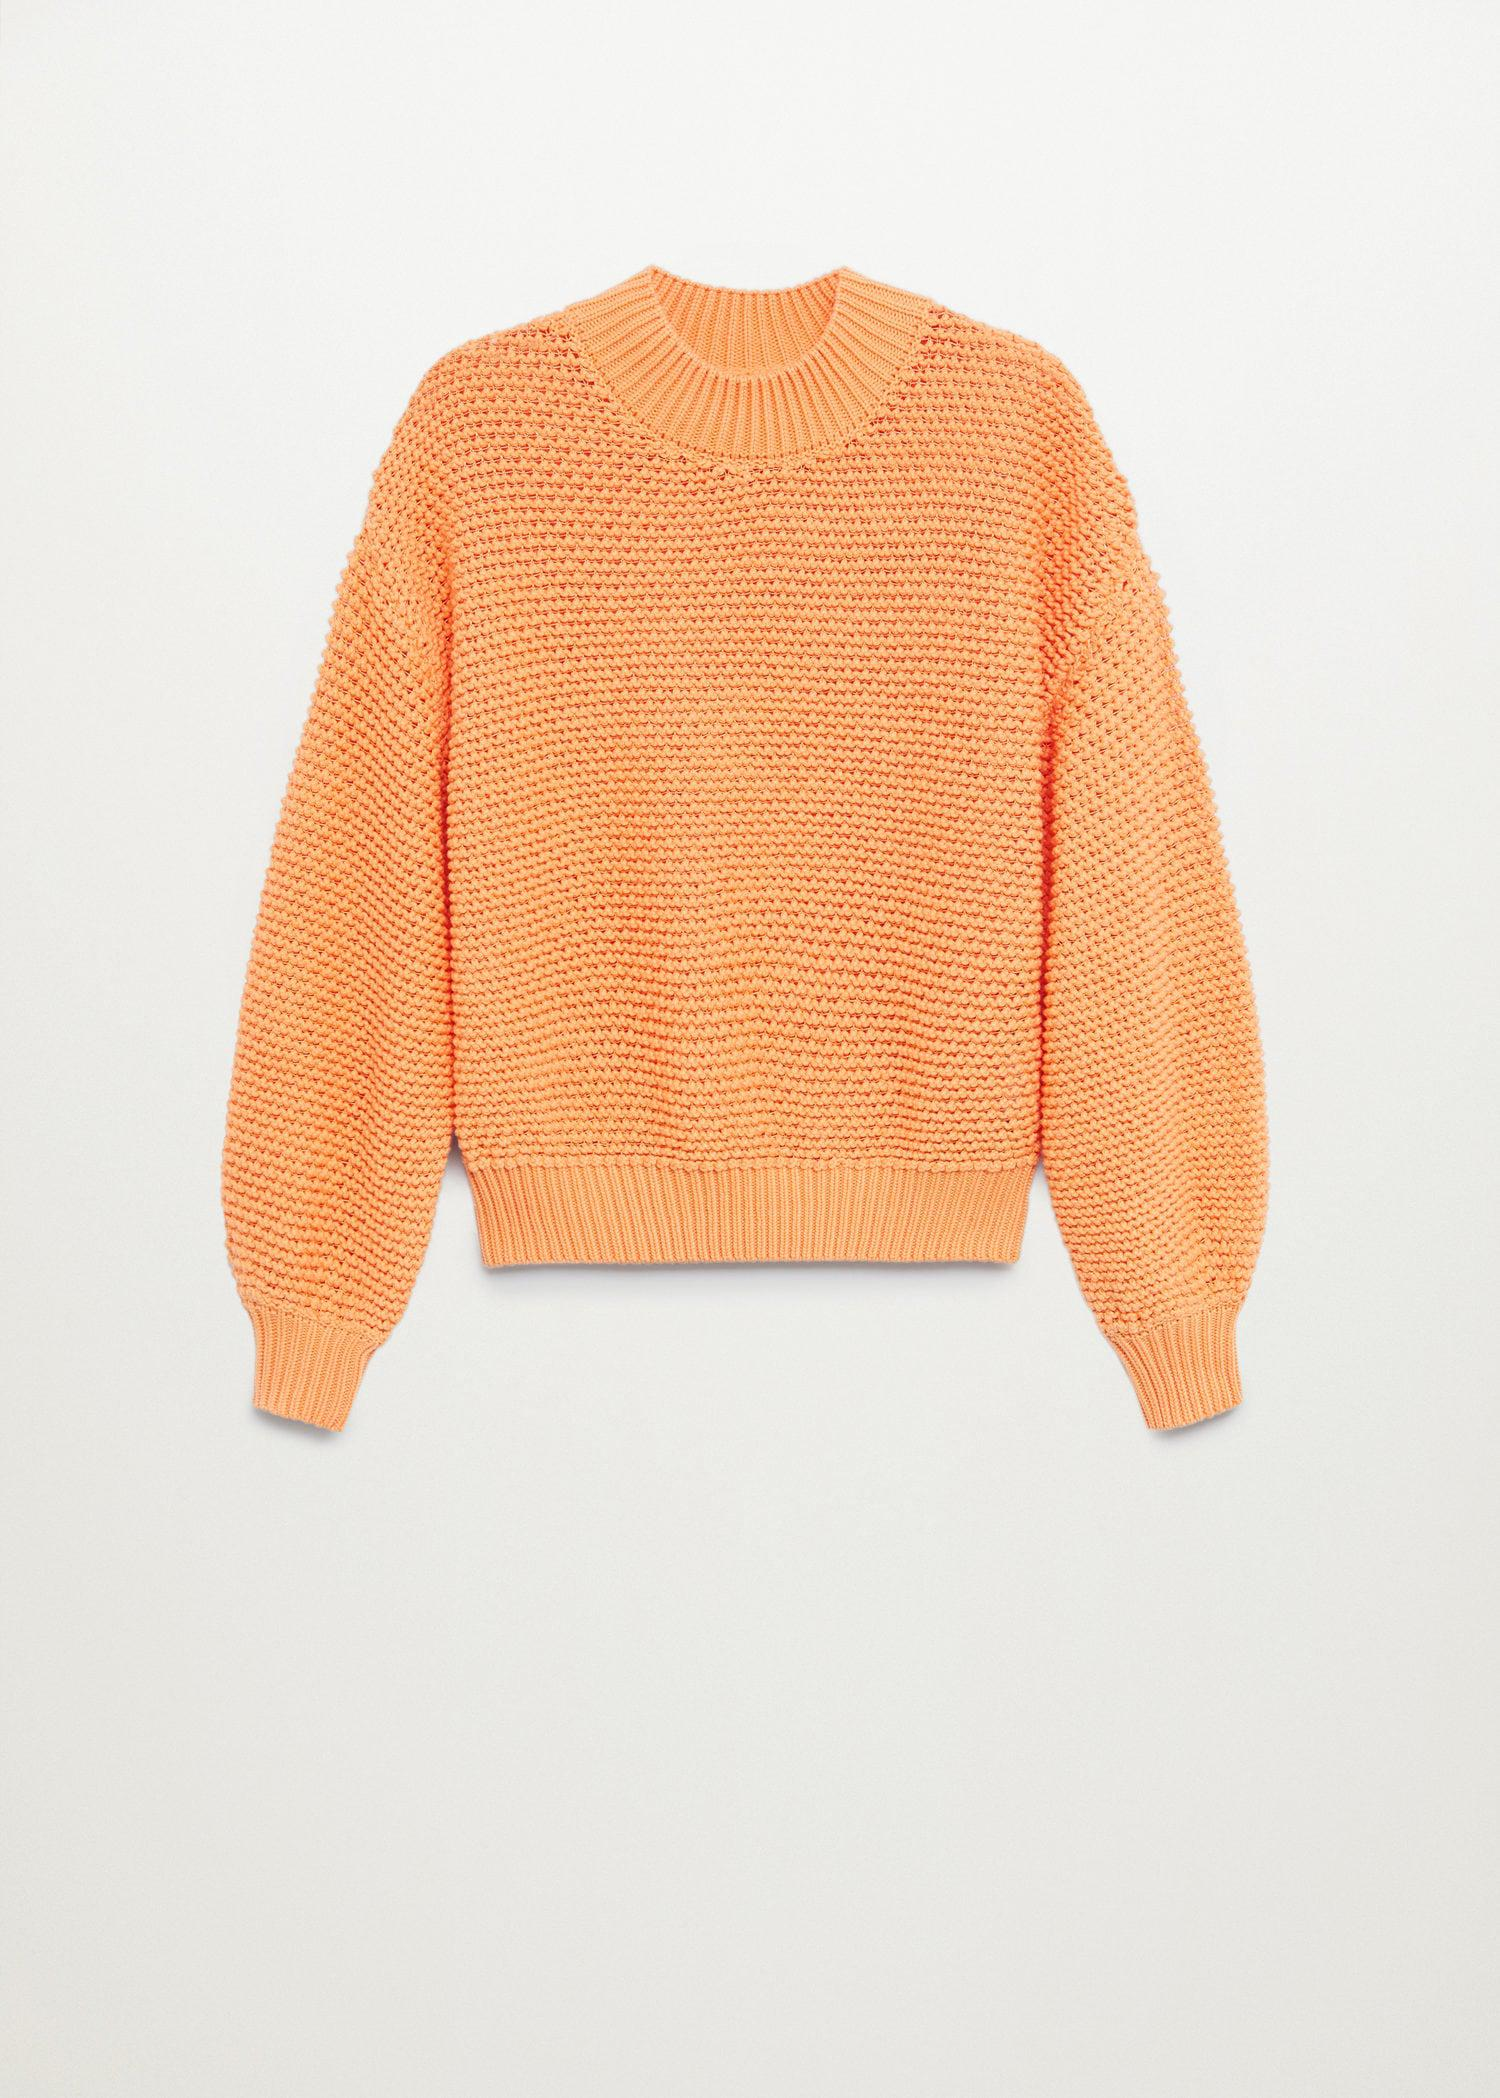 Embossed contrasting knit sweater 7